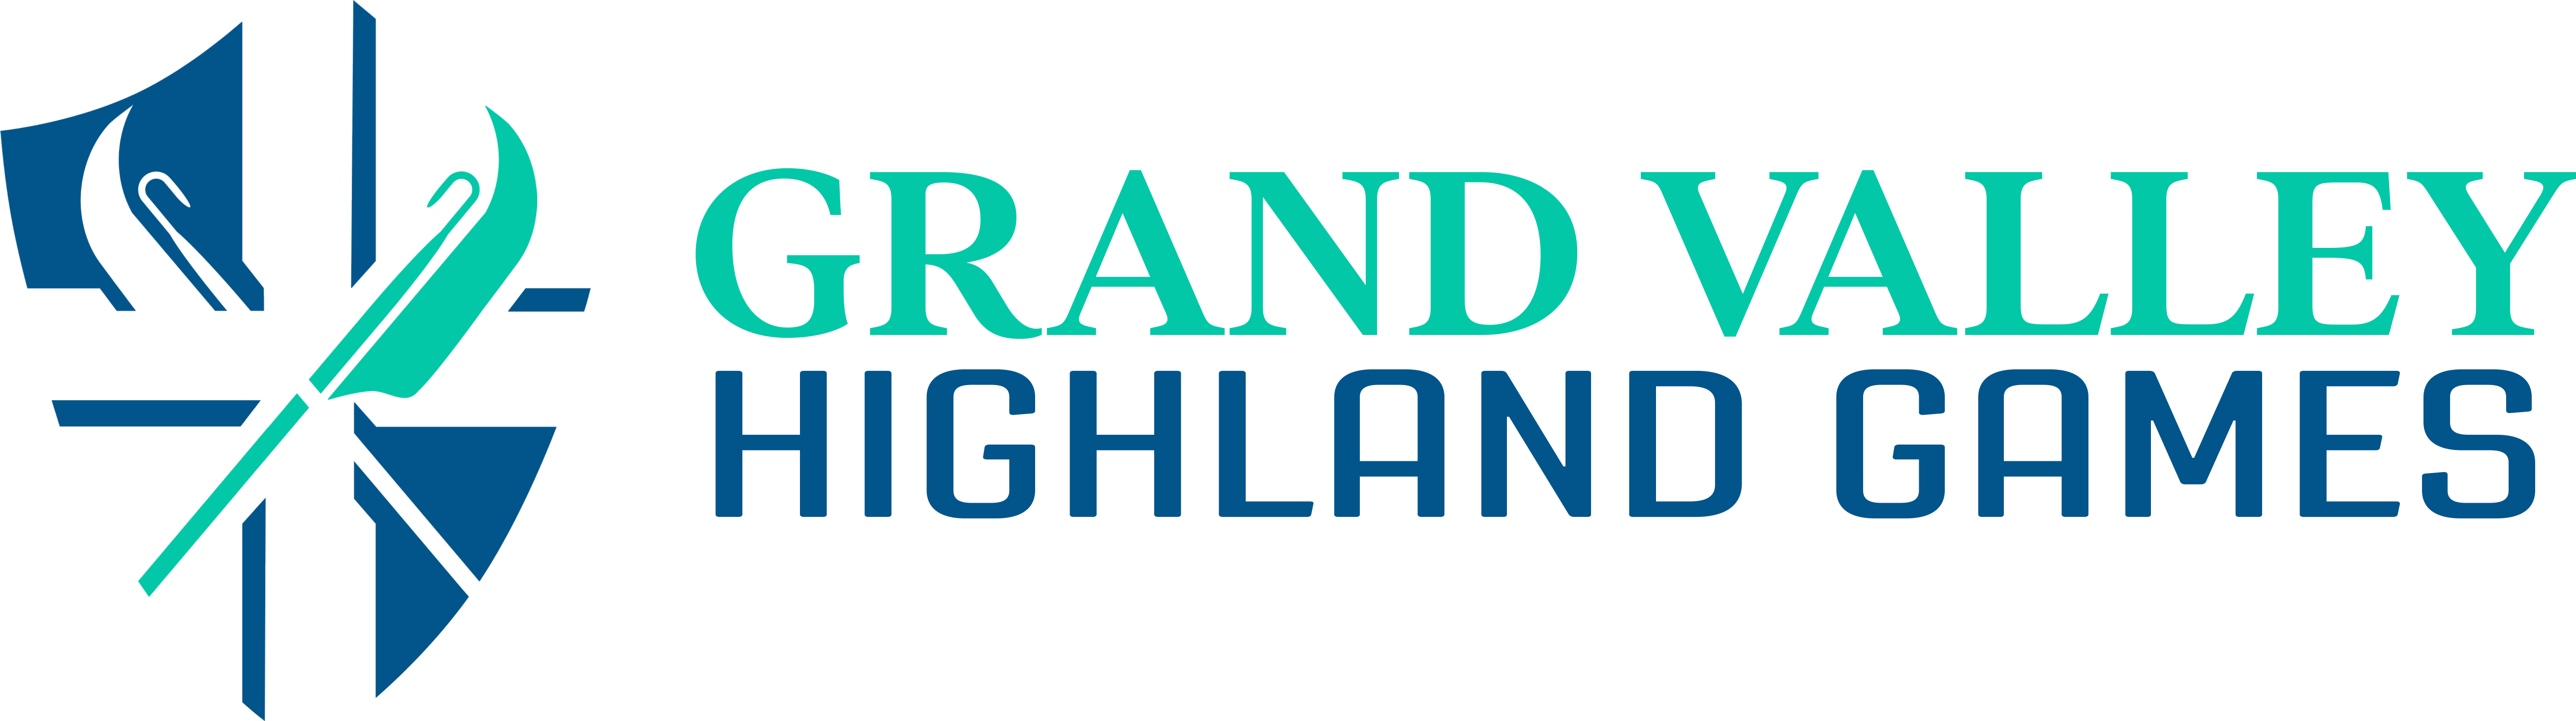 Grand Valley Highland Games